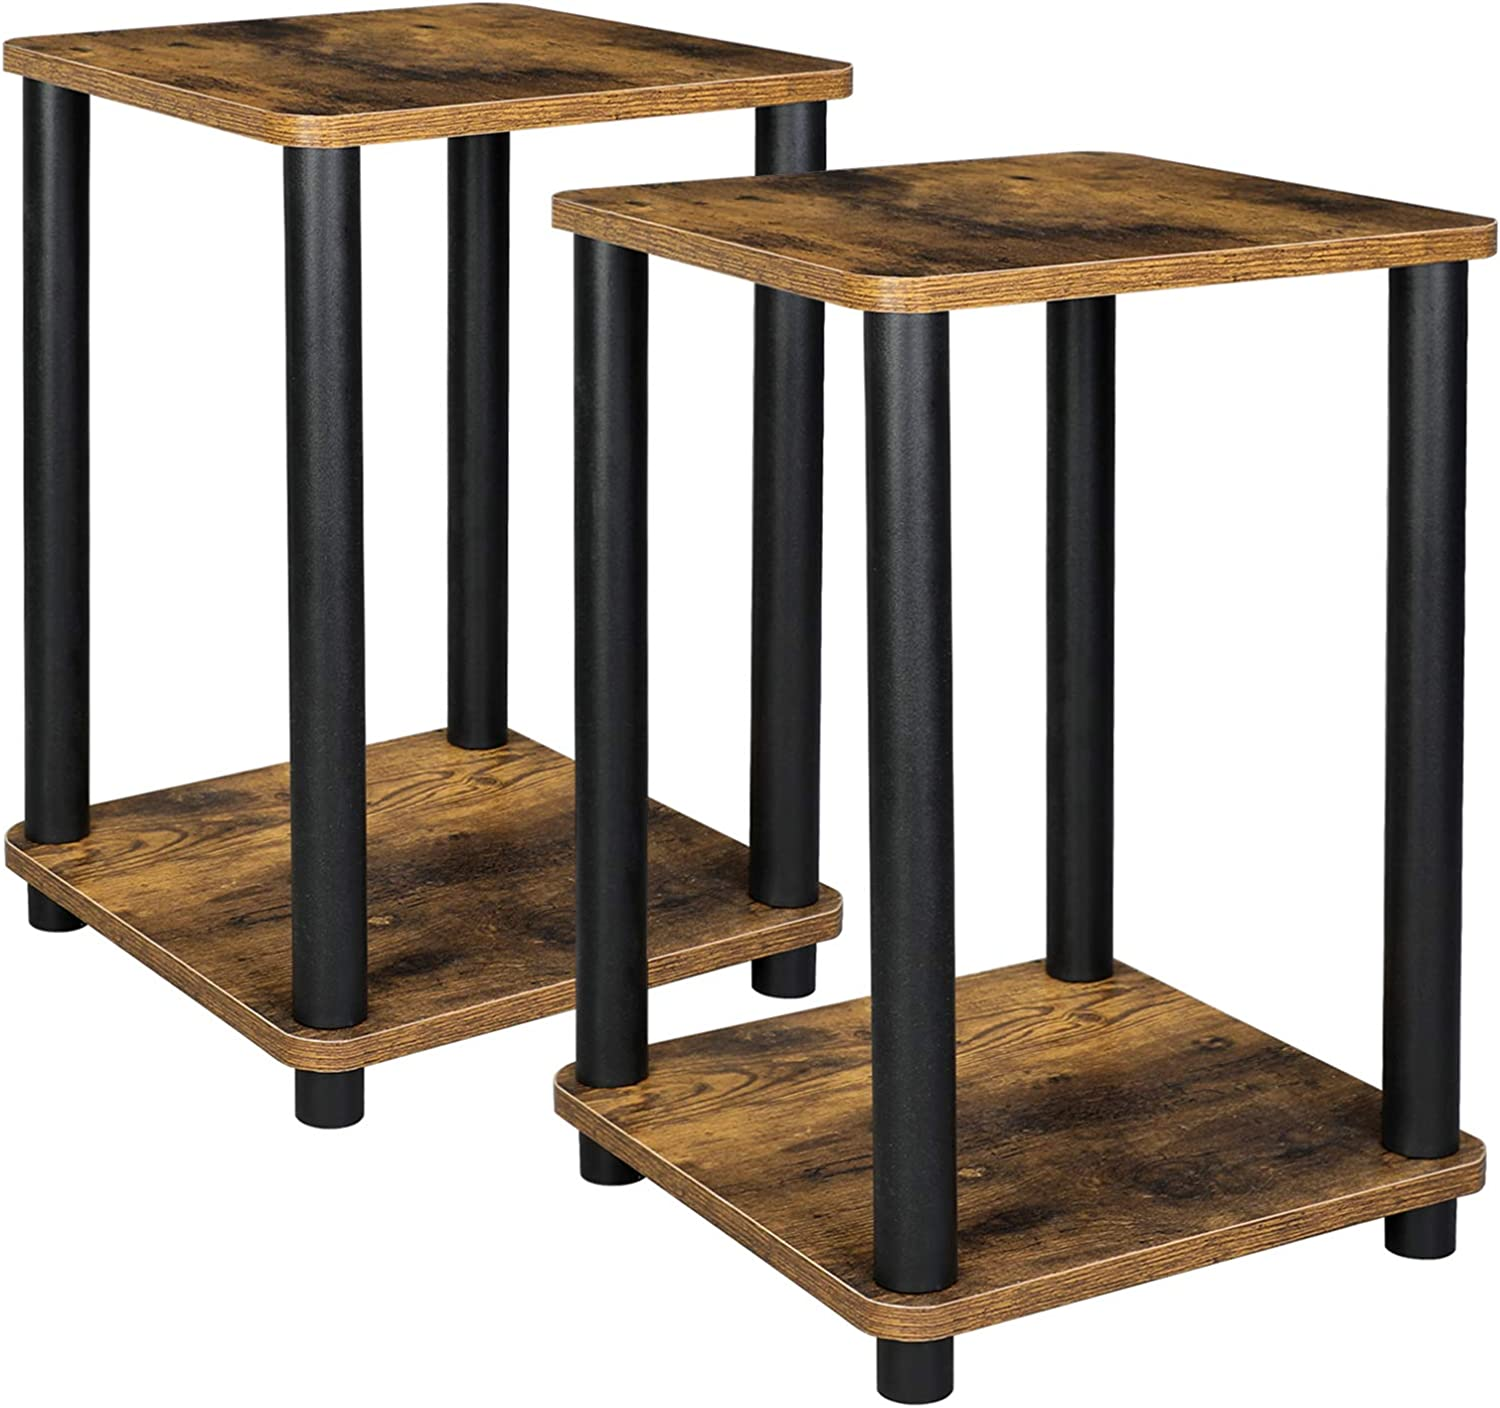 VASAGLE 2-Tier End Table, Set of 2, Nightstand, Side Table with Storage Shelf, Stable, for Living Room, Bedroom, Office, 13.4 x 13.4 x 19.7 Inches, Rustic Brown and Black ULET181X01